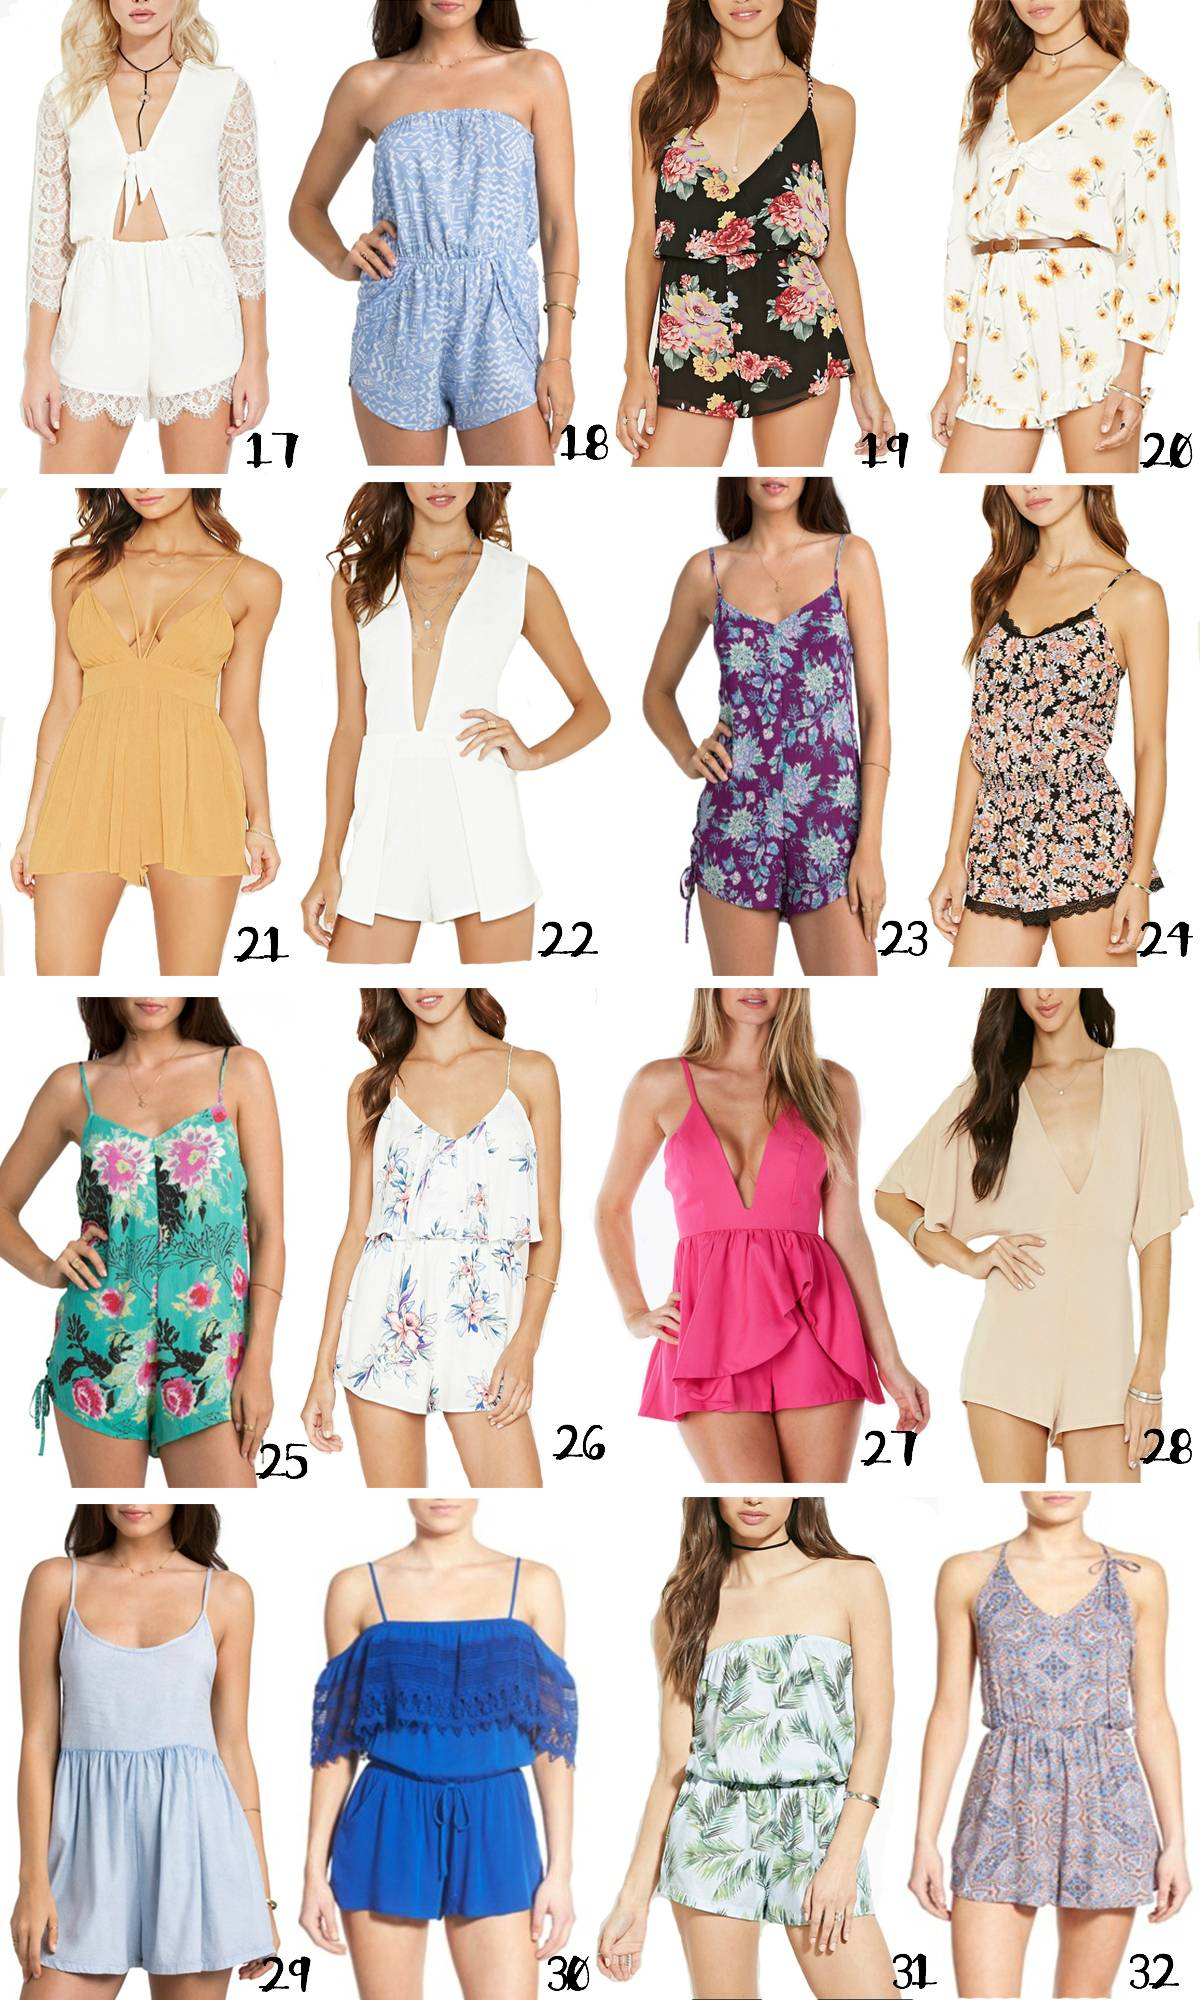 Spring rompers   fashionable rompers   rompers for tall girls   Mash Elle beauty blogger